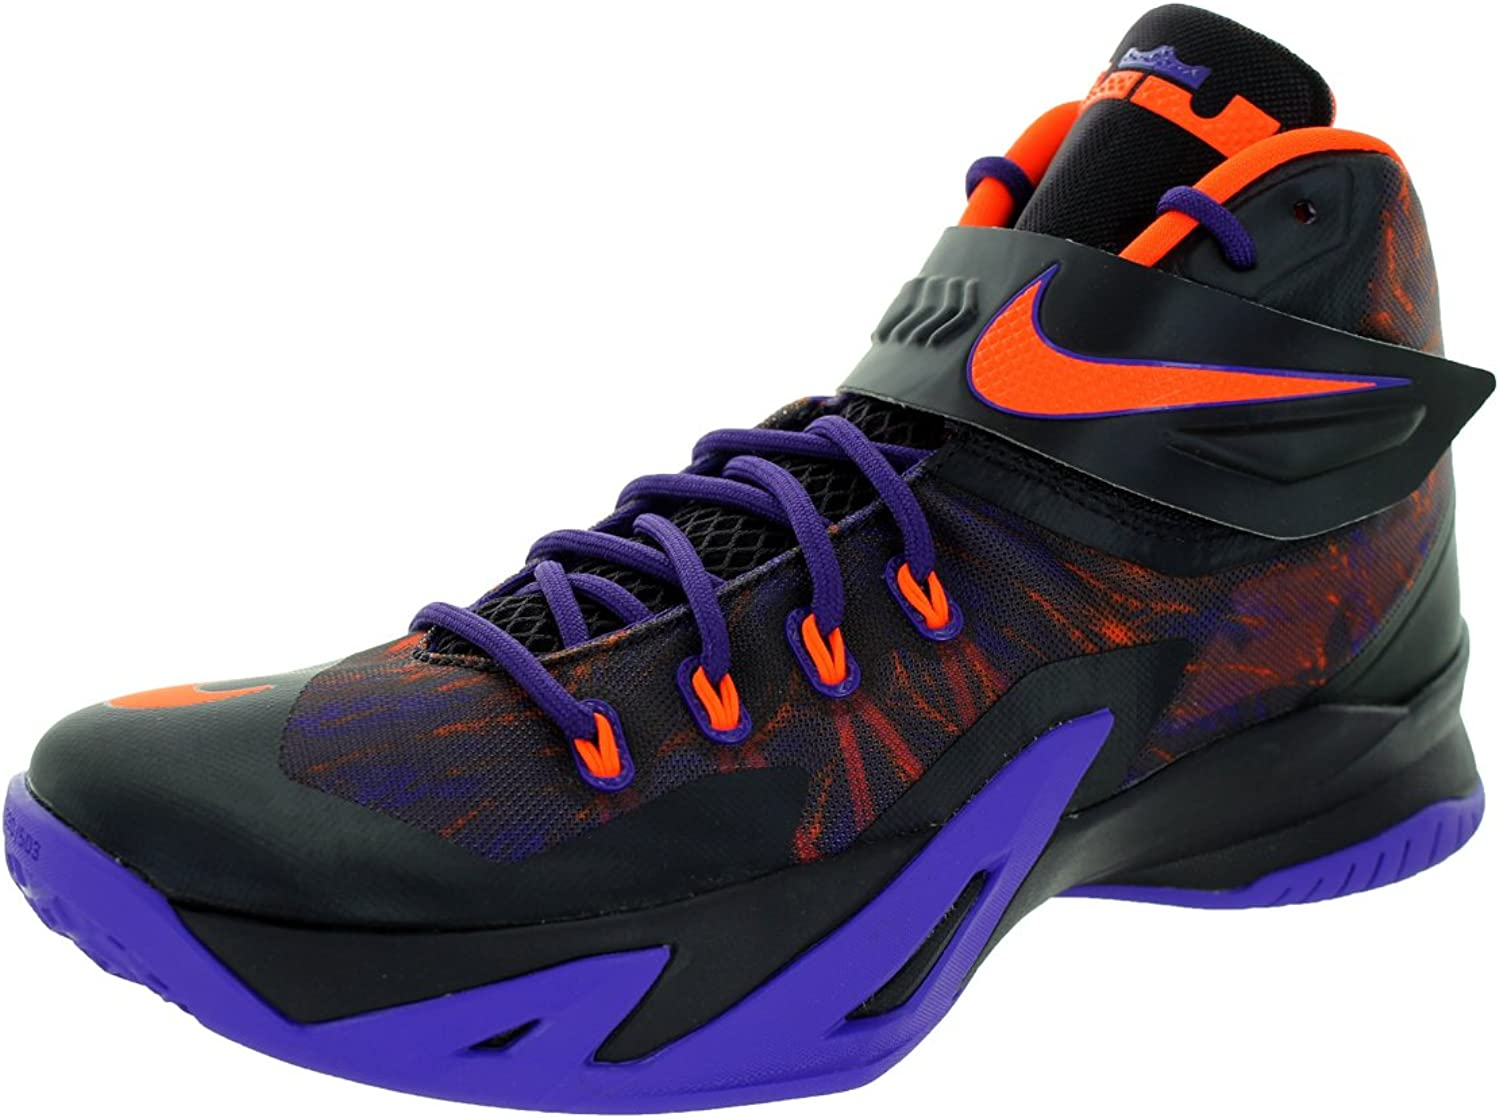 Nike Men's Zoom Soldier VIII Prm Basketball shoes